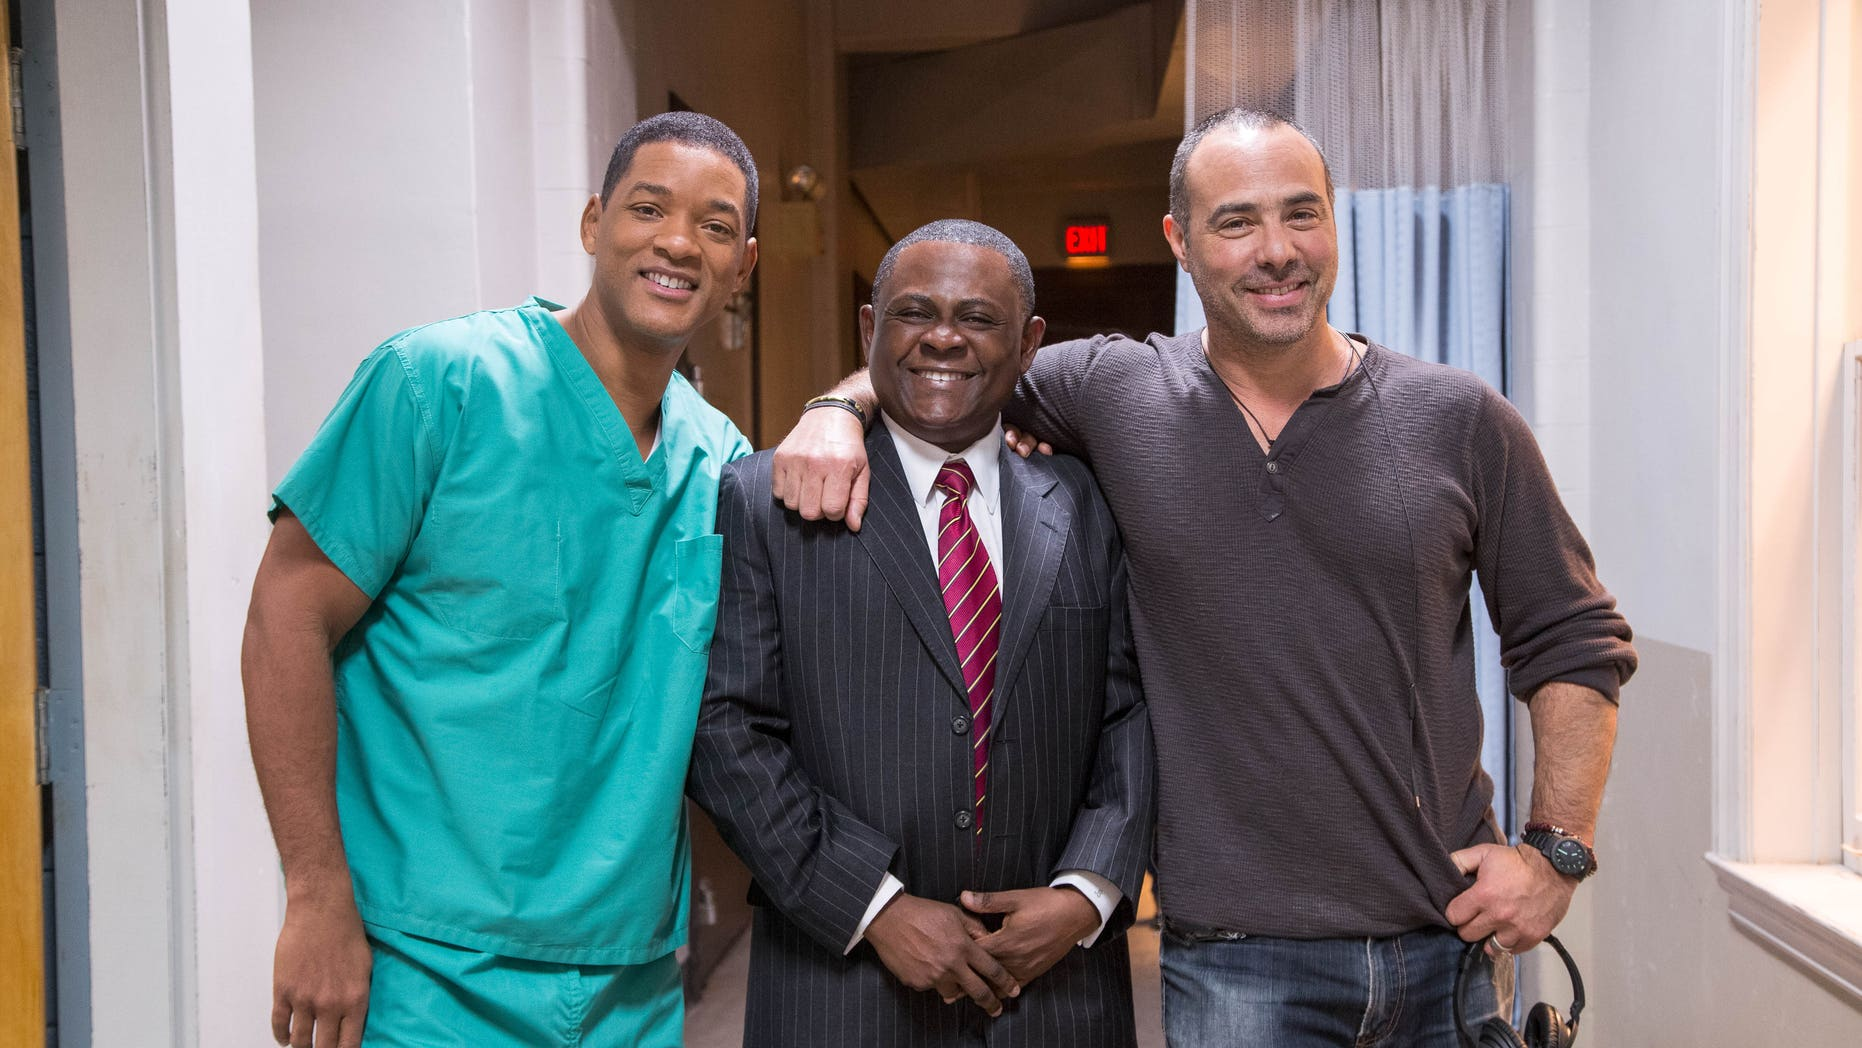 """This image released by Columbia Pictures shows, from left, Will Smith, Dr. Bennet Omalu and director Peter Landesman on the set of the film, """"Concussion."""" Smith plays Omalu, a Nigerian-born forensic pathologist in Pittsburgh who knows nothing about football when he performs the autopsy on former Steelers center Mike Webster. Omalu discovers CTE in Webster's brain, setting him on a journey that exposes the concussion crisis. (Melinda Sue Gordon/Columbia Pictures via AP)"""